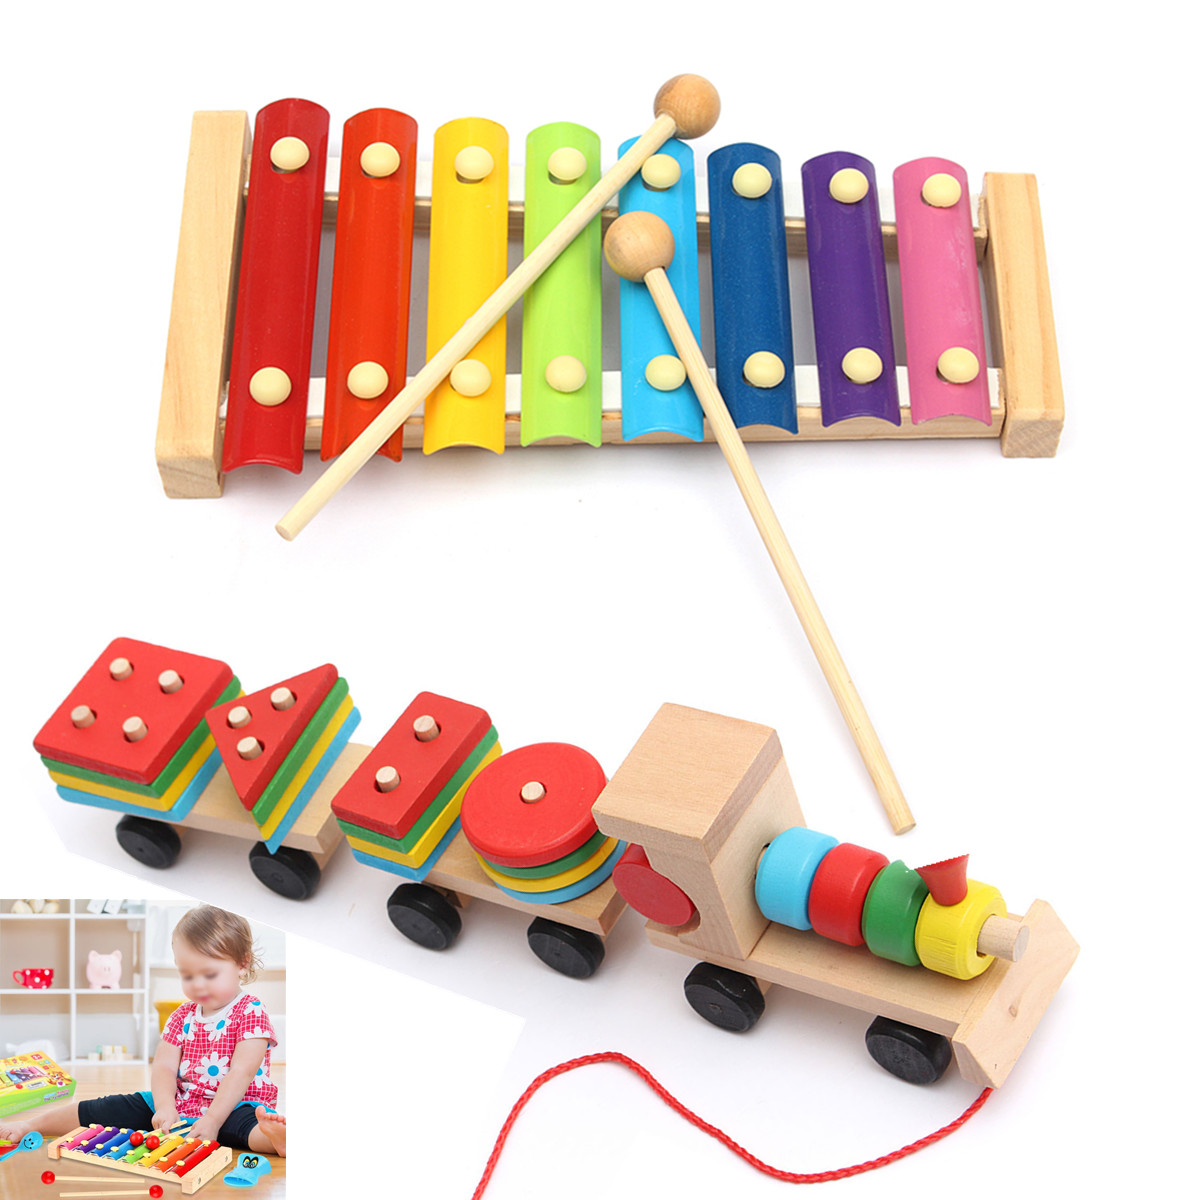 kids baby natural wooden hand knock piano stacking train puzzles  educational xylophone musical instrument glockenspiel toy inspire  children's talent